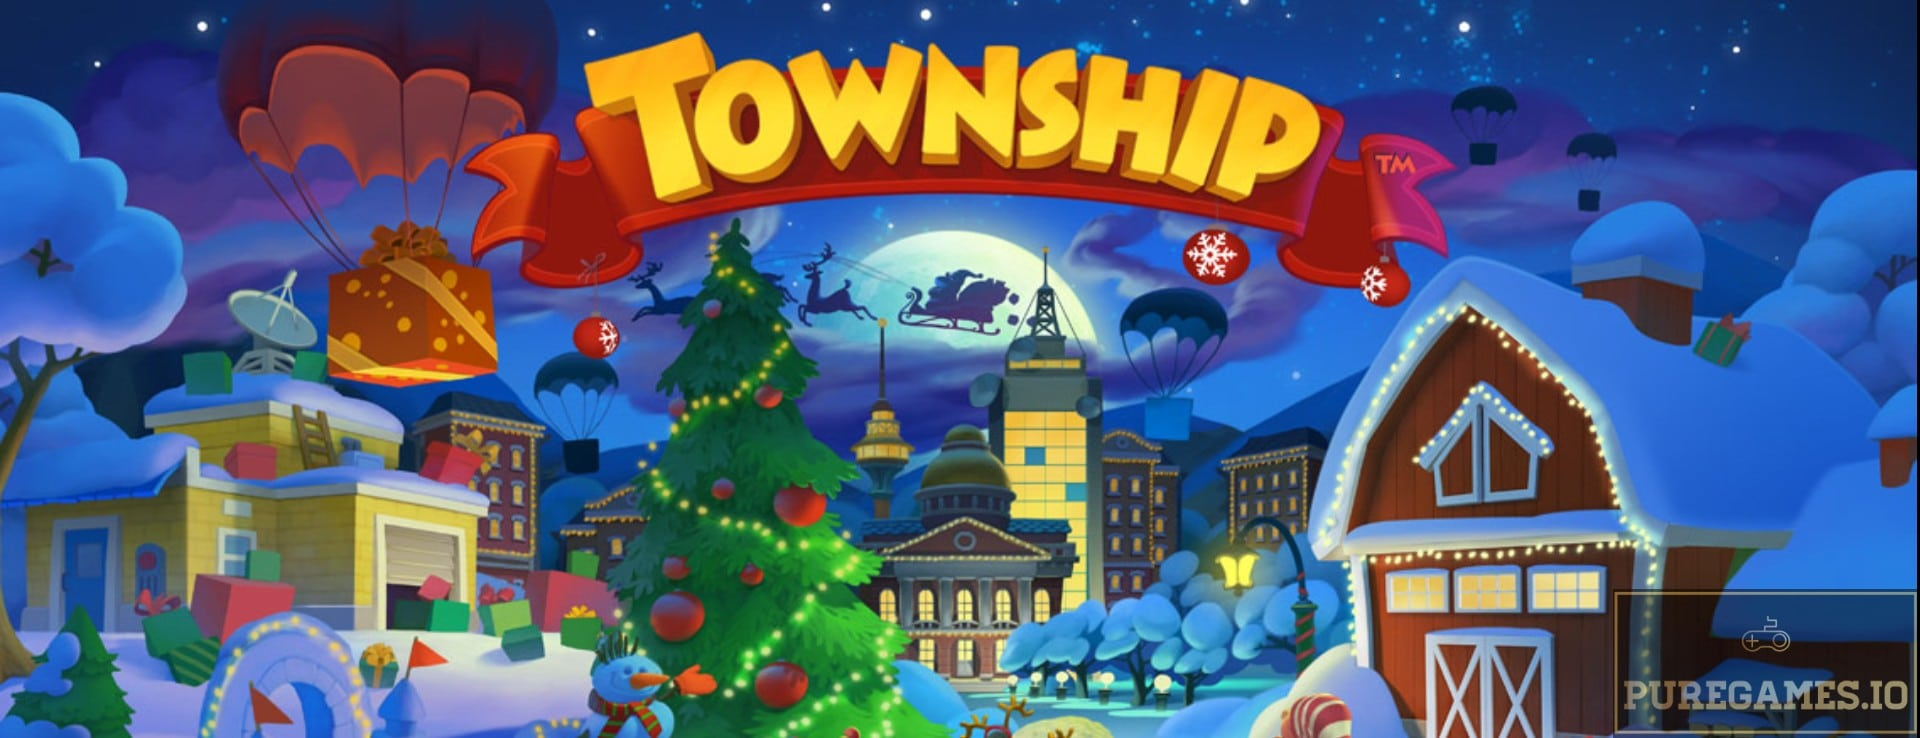 Download Township APK for Android/iOS 15